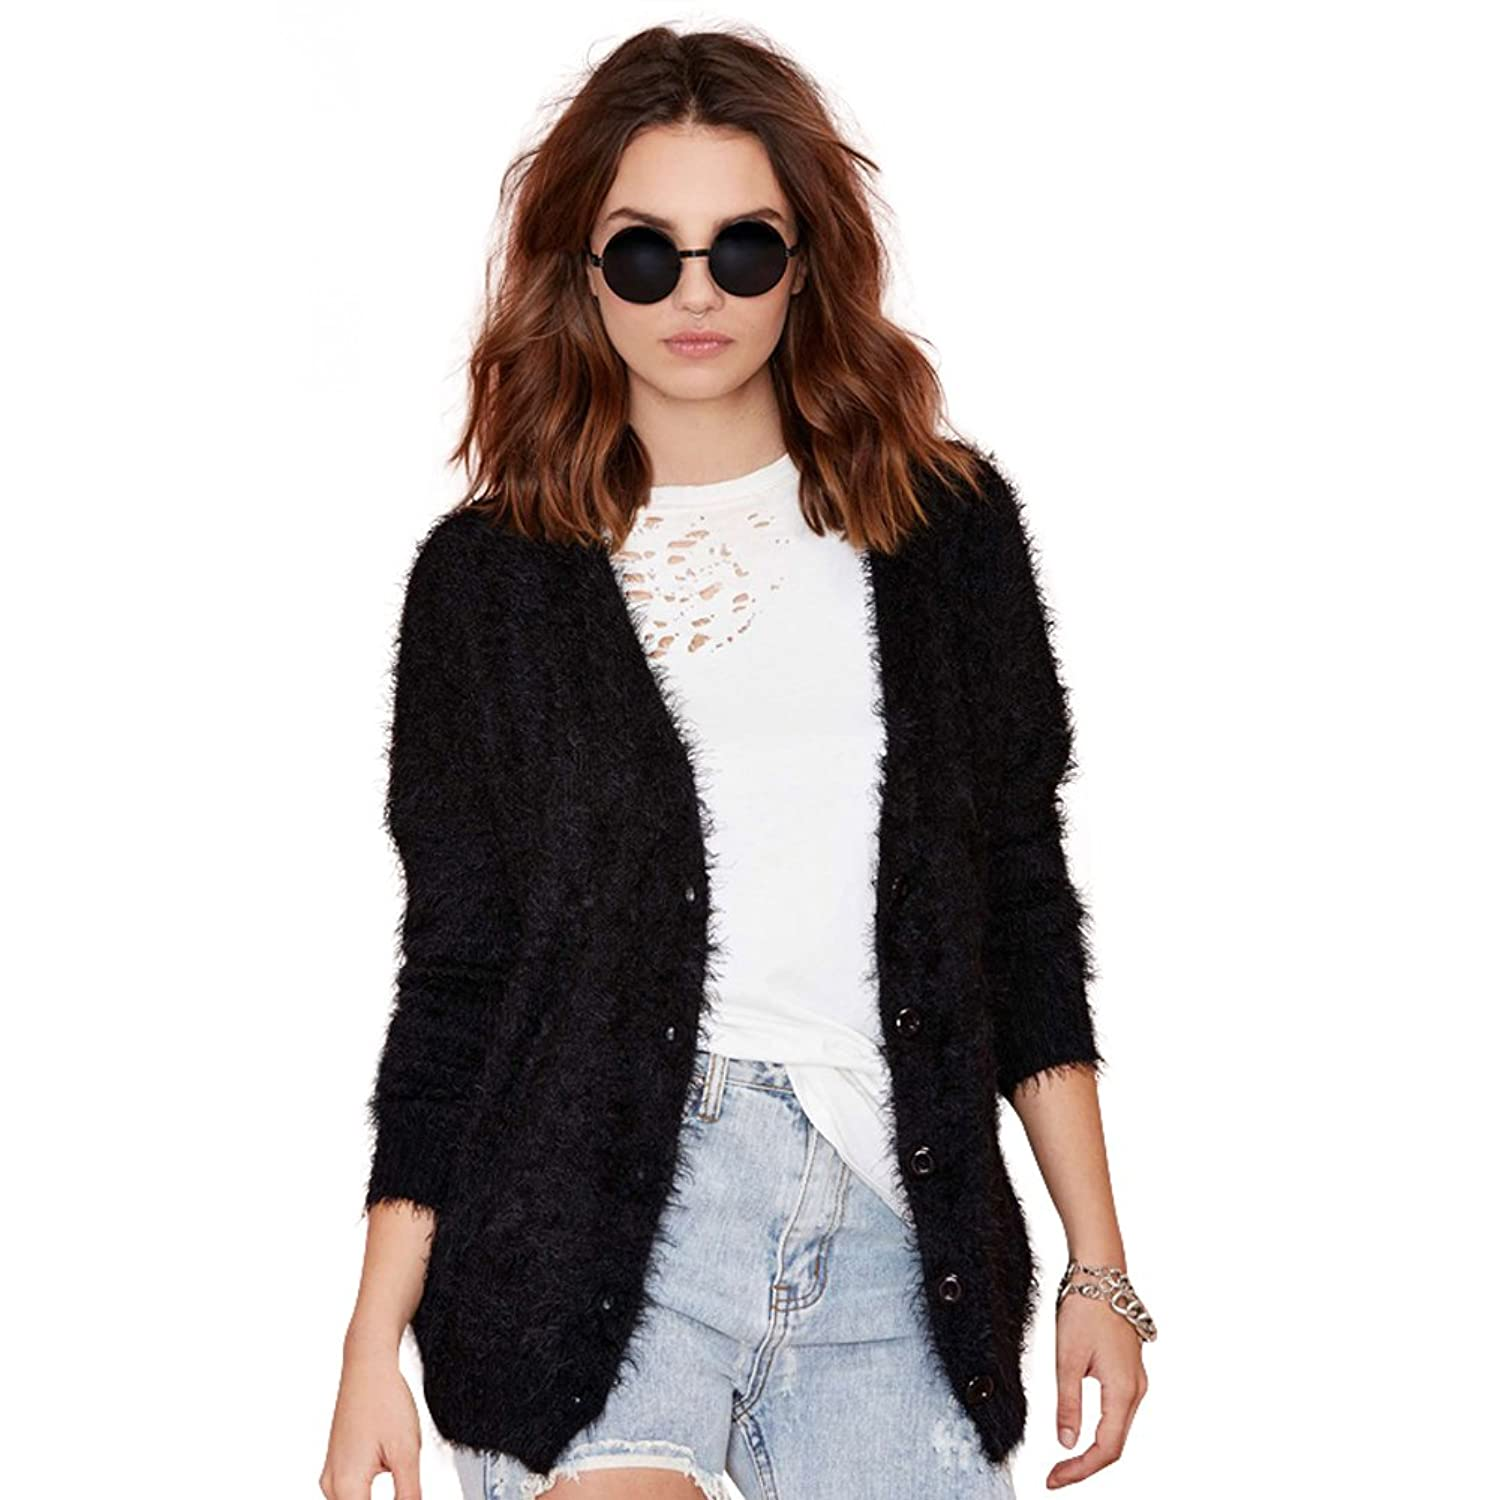 VOGUE CODE Classic Crew Neck Casual Sweater Mohair Knit Cardigan